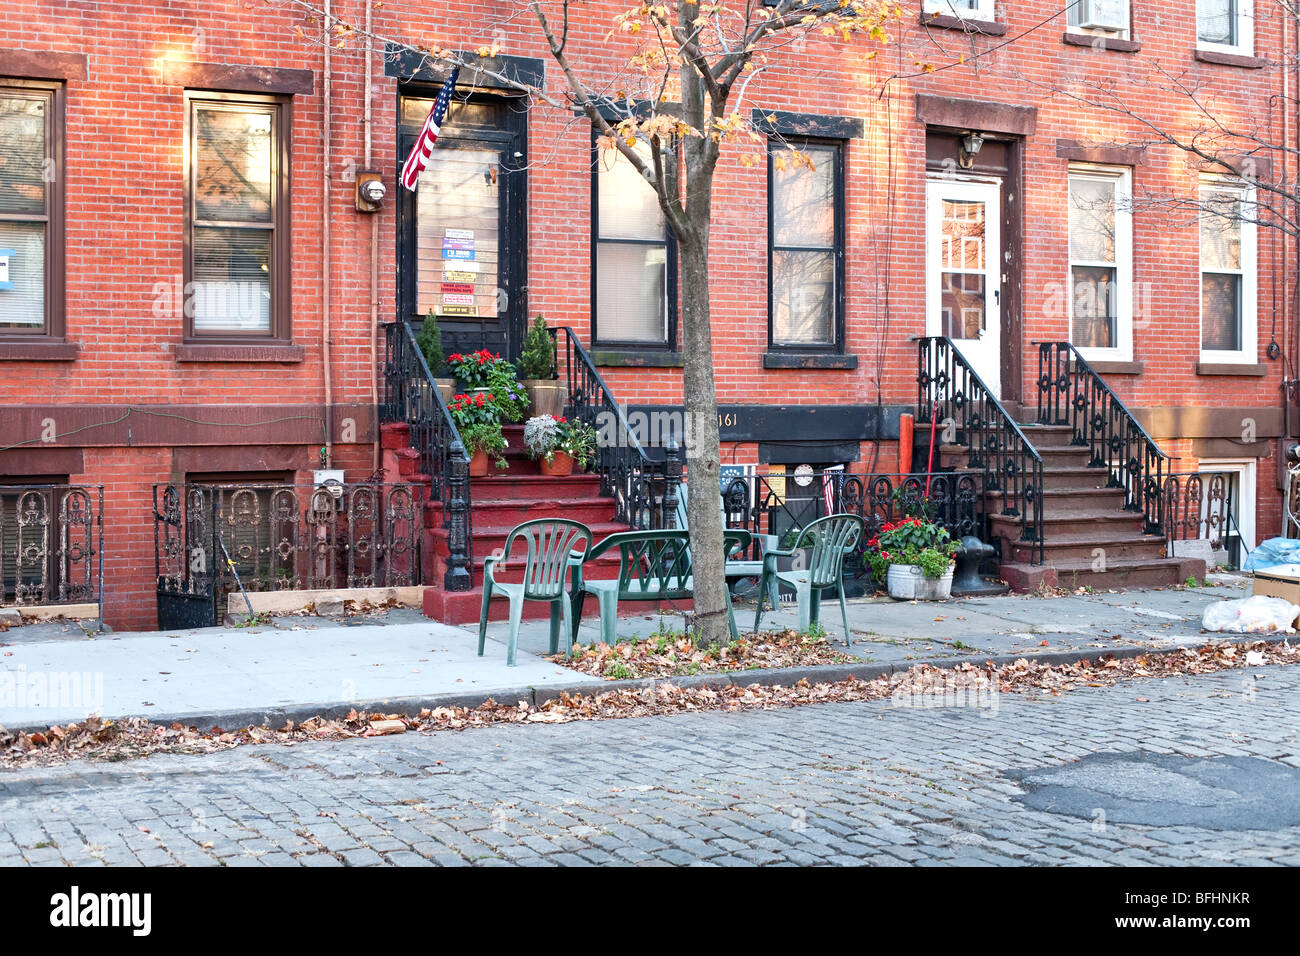 ground floor view charming old restored brick row houses on Coffey street in a gentrified area of Red Hook Brooklyn - Stock Image